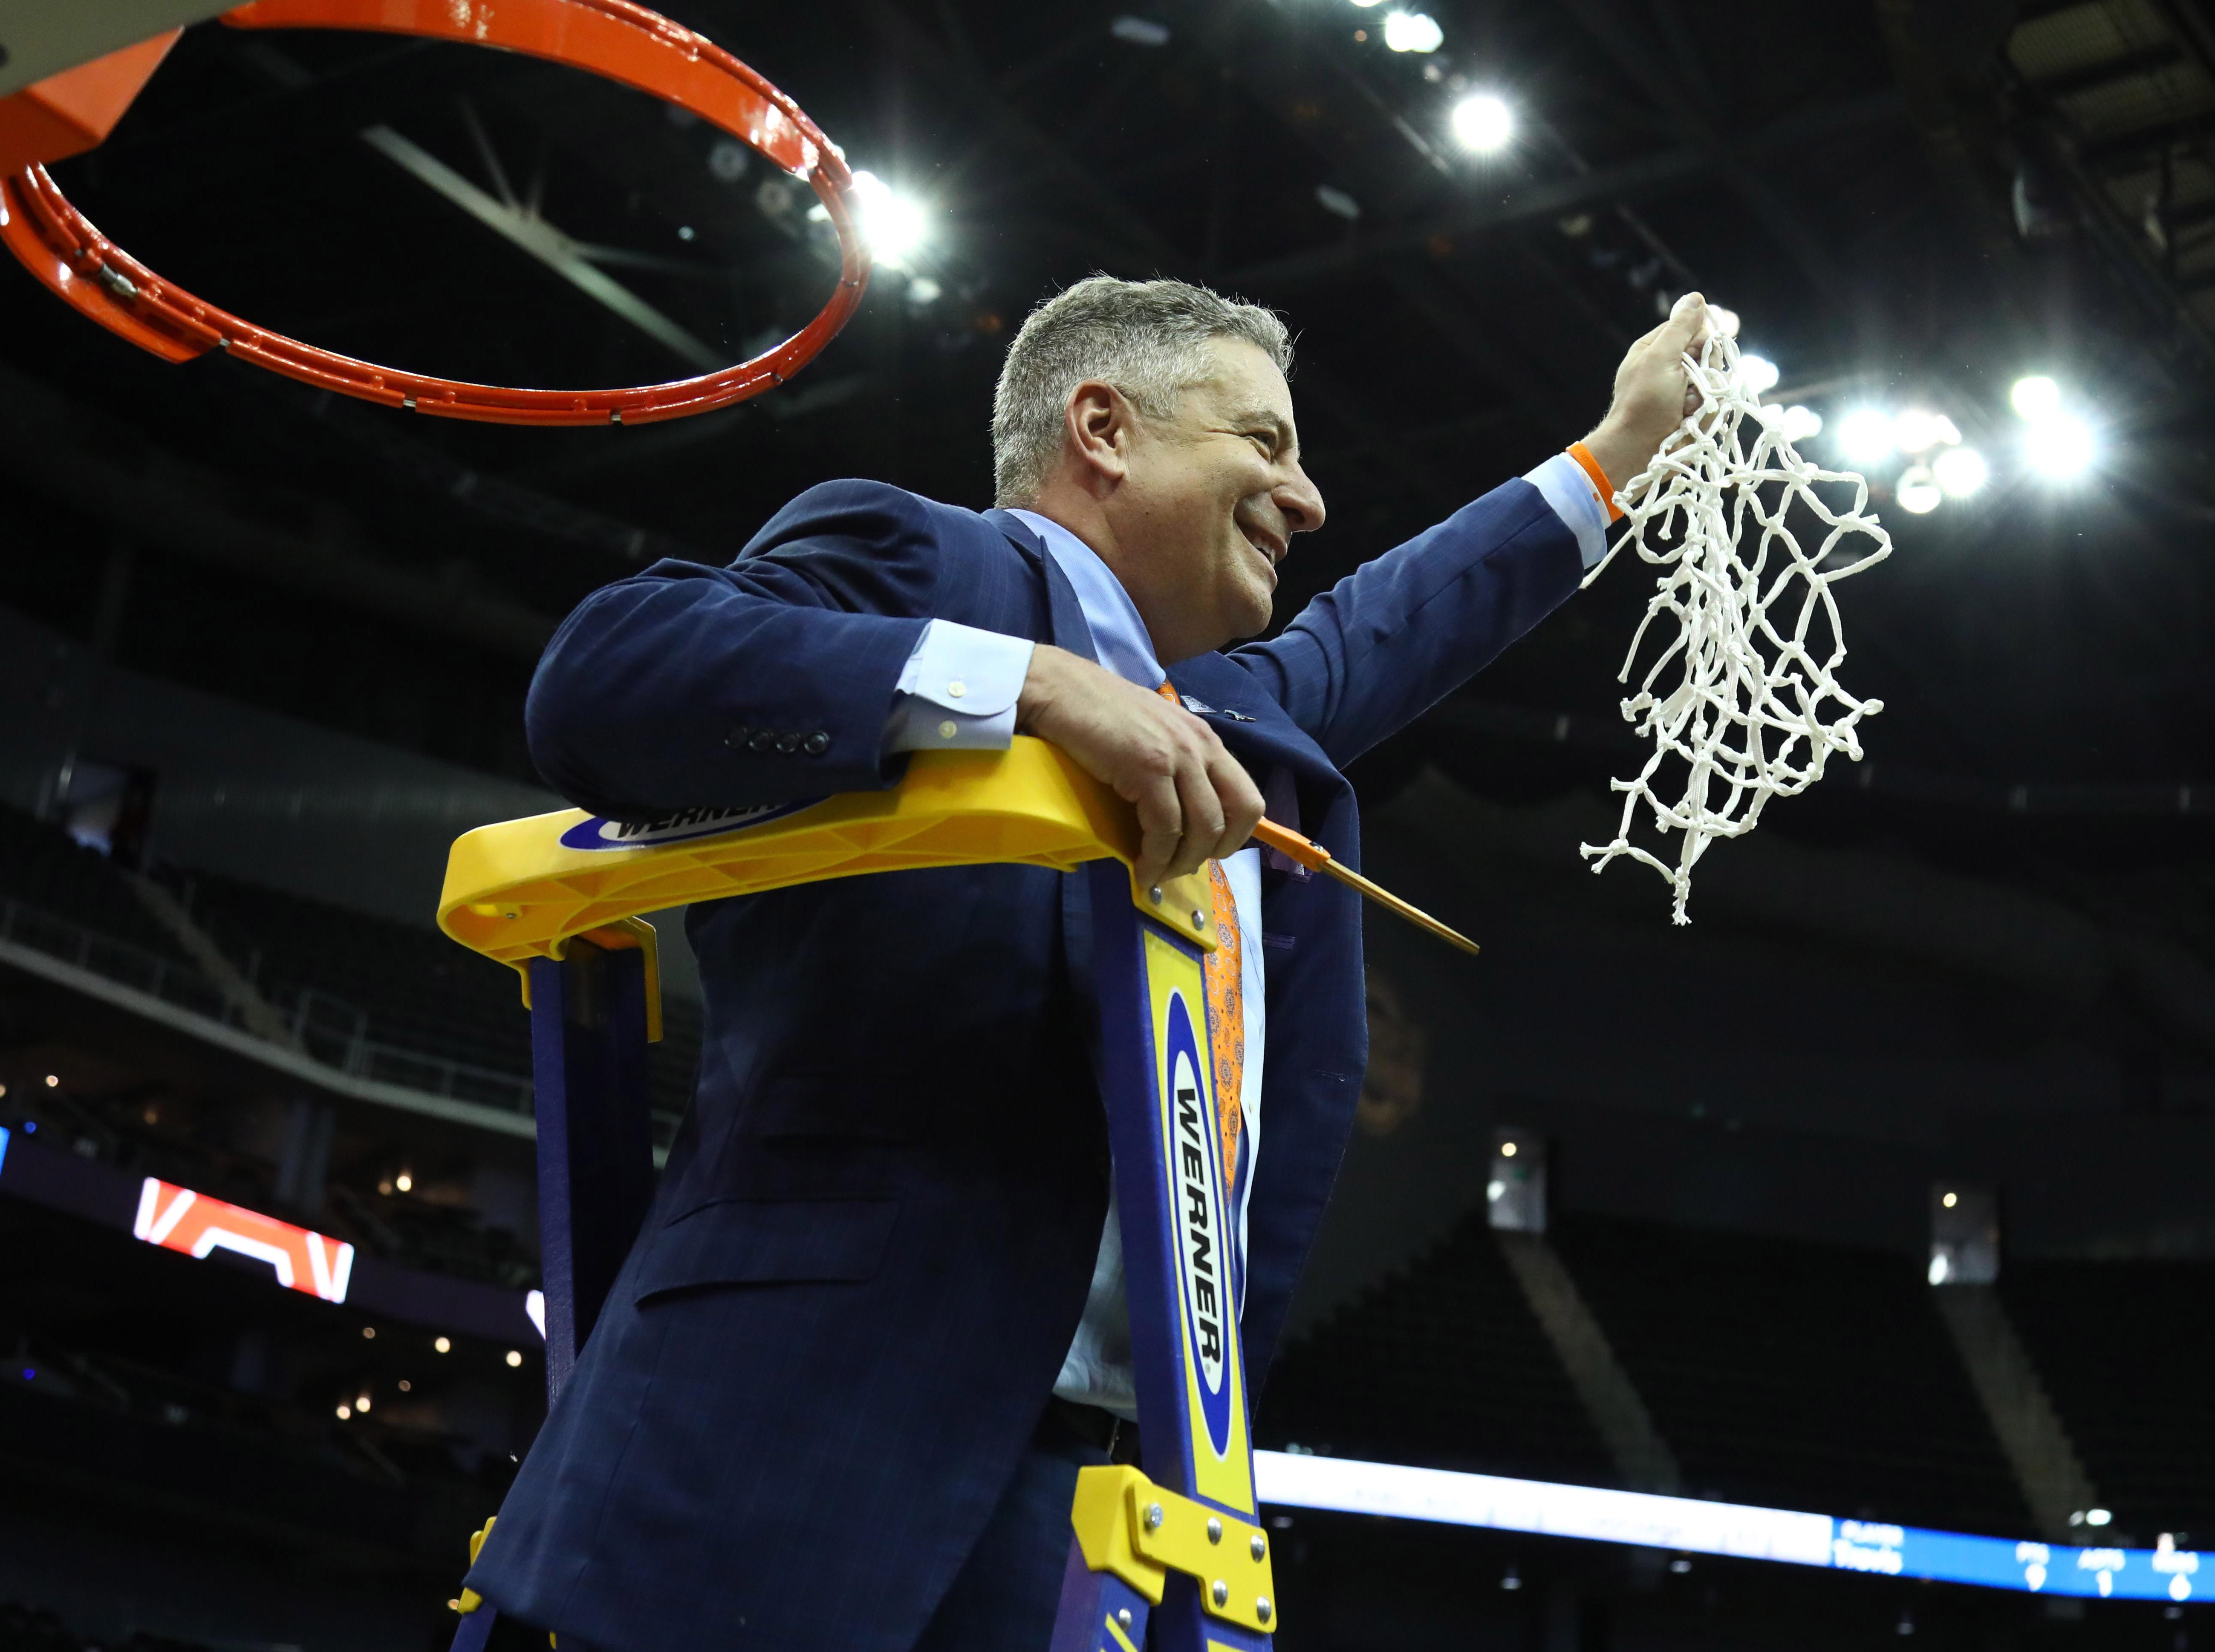 Auburn Tigers head coach Bruce Pearl cuts down the net after defeating the Kentucky Wildcats in the championship game of the midwest regional of the 2019 NCAA Tournament at Sprint Center on March 31, 2019, in Kansas City